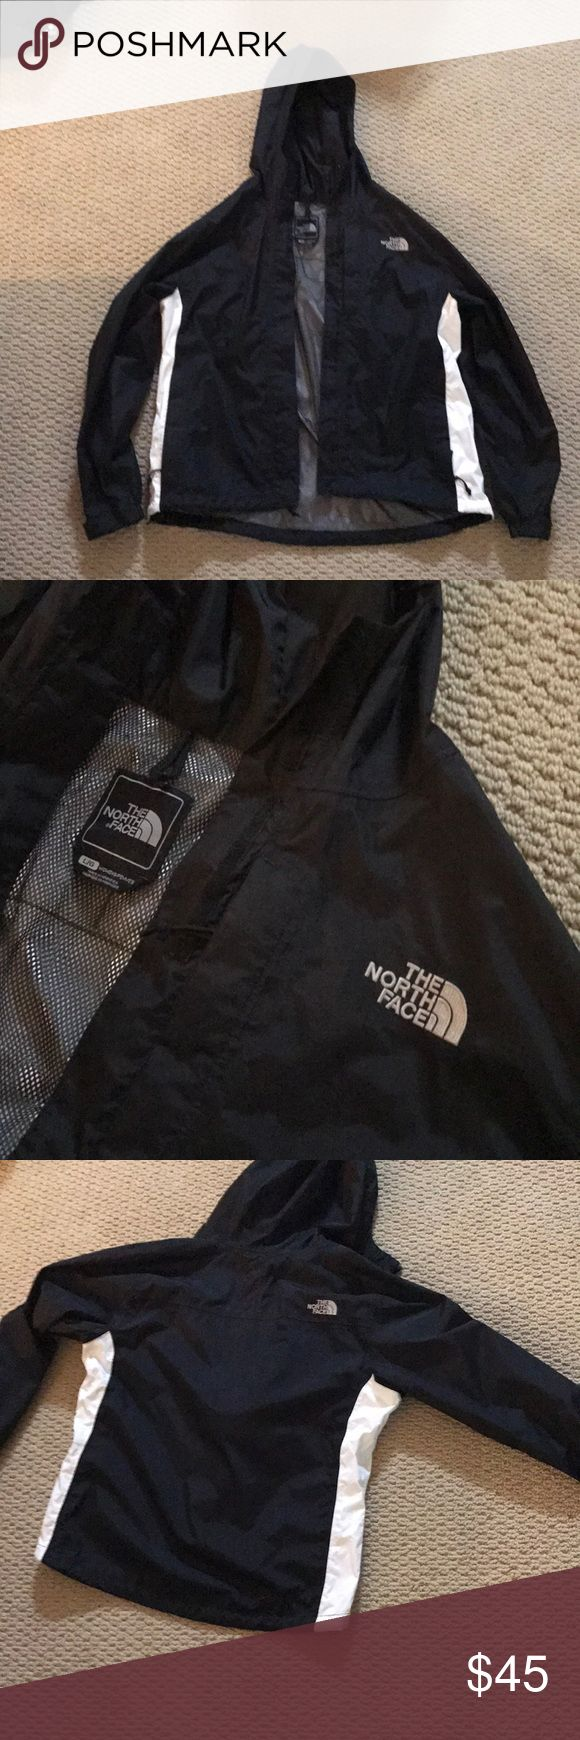 Women's North Face rain jacket L Black/white women's rain jacket, size large, black and white two side pockets and one chest pocket hooded, zip up, water proof, mesh interior North Face Jackets & Coats